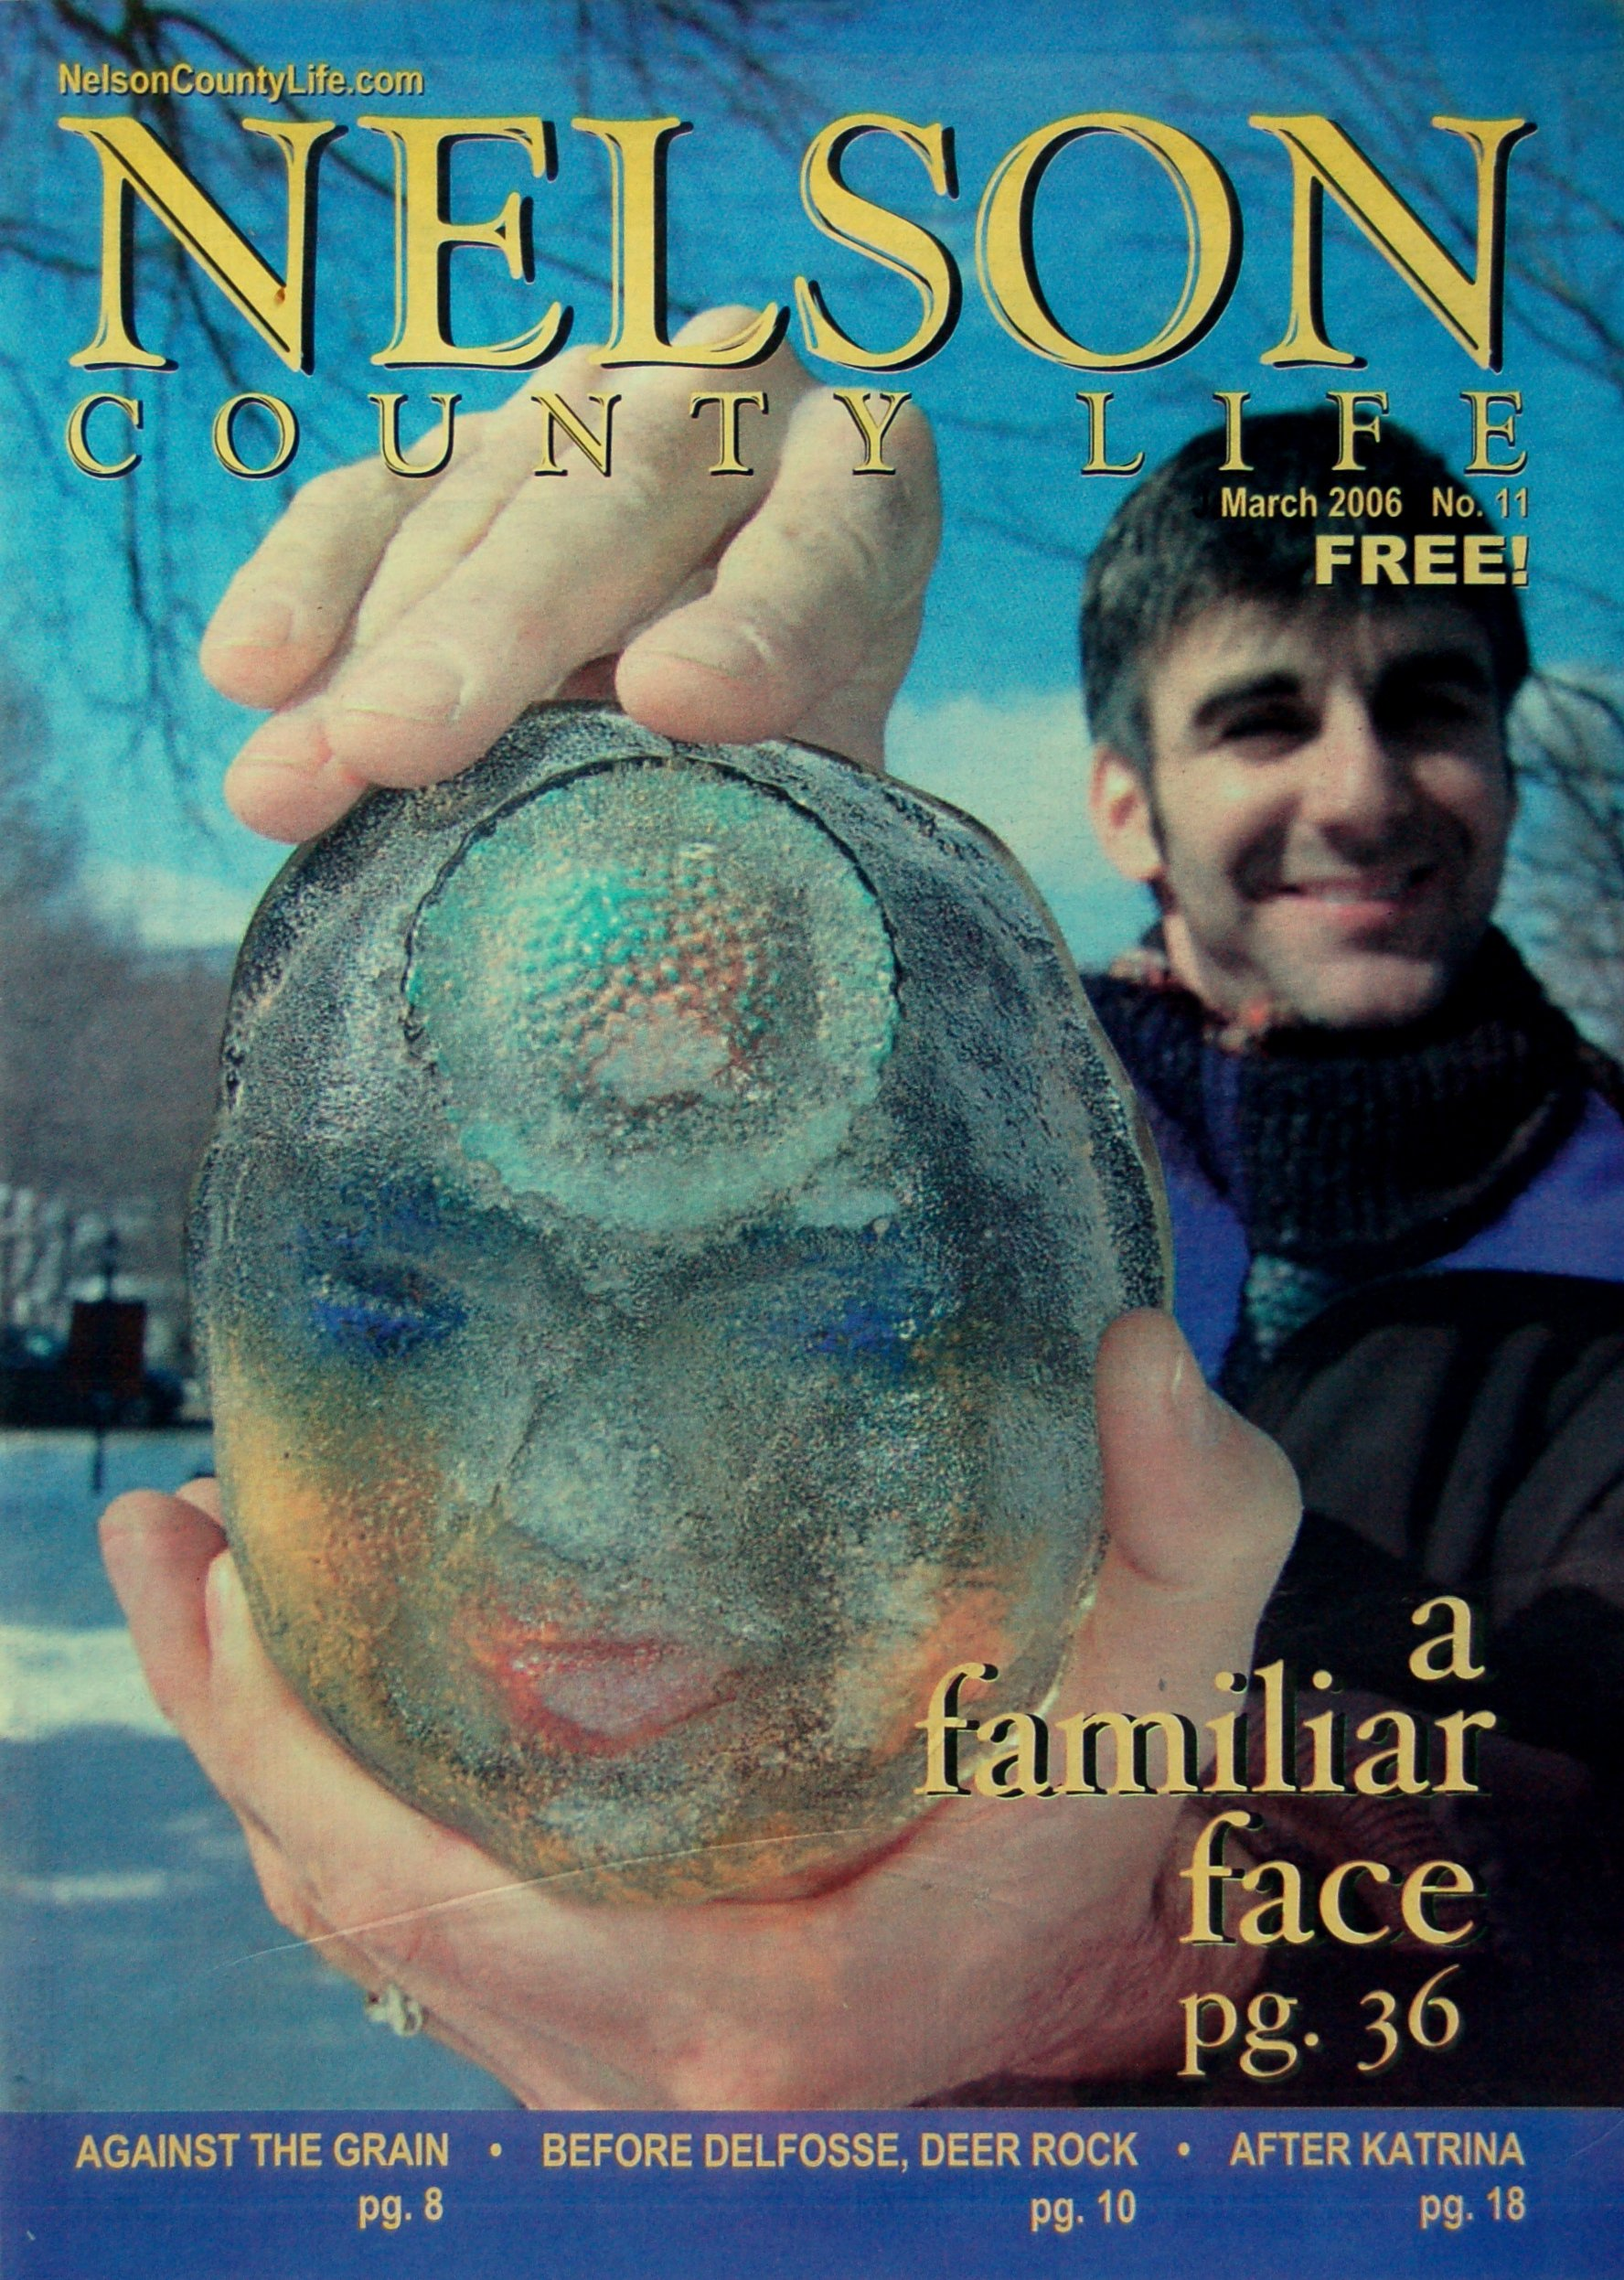 Nelson County Life MAR 2006 COVER.JPG.jpg